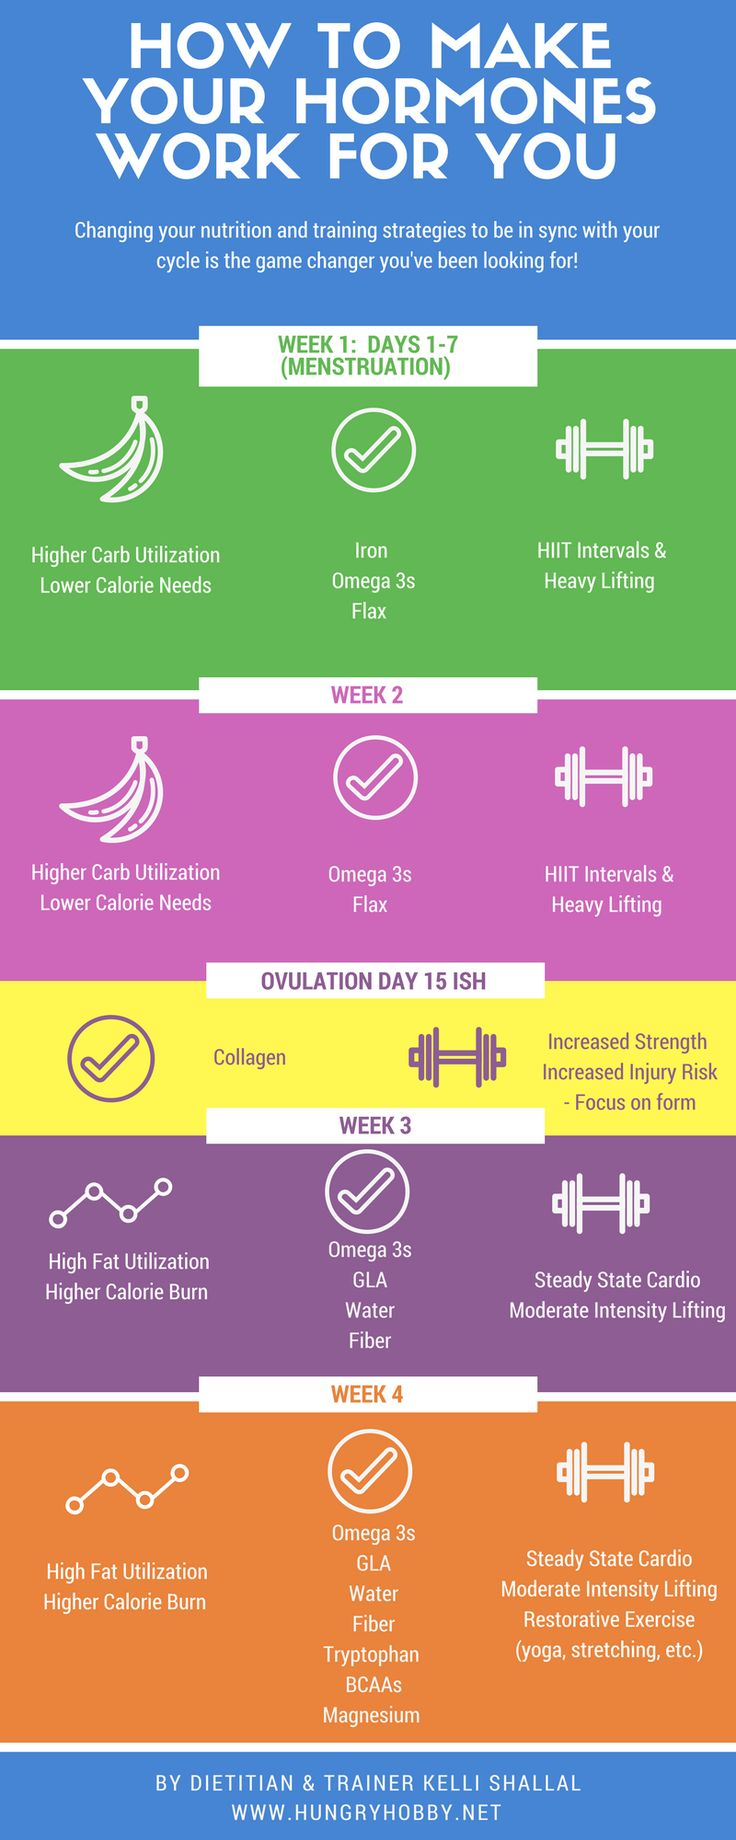 How to use your menstrual cycle stages to make your hormones work for you to optimize performance and body composition changes! via @hungryhobby